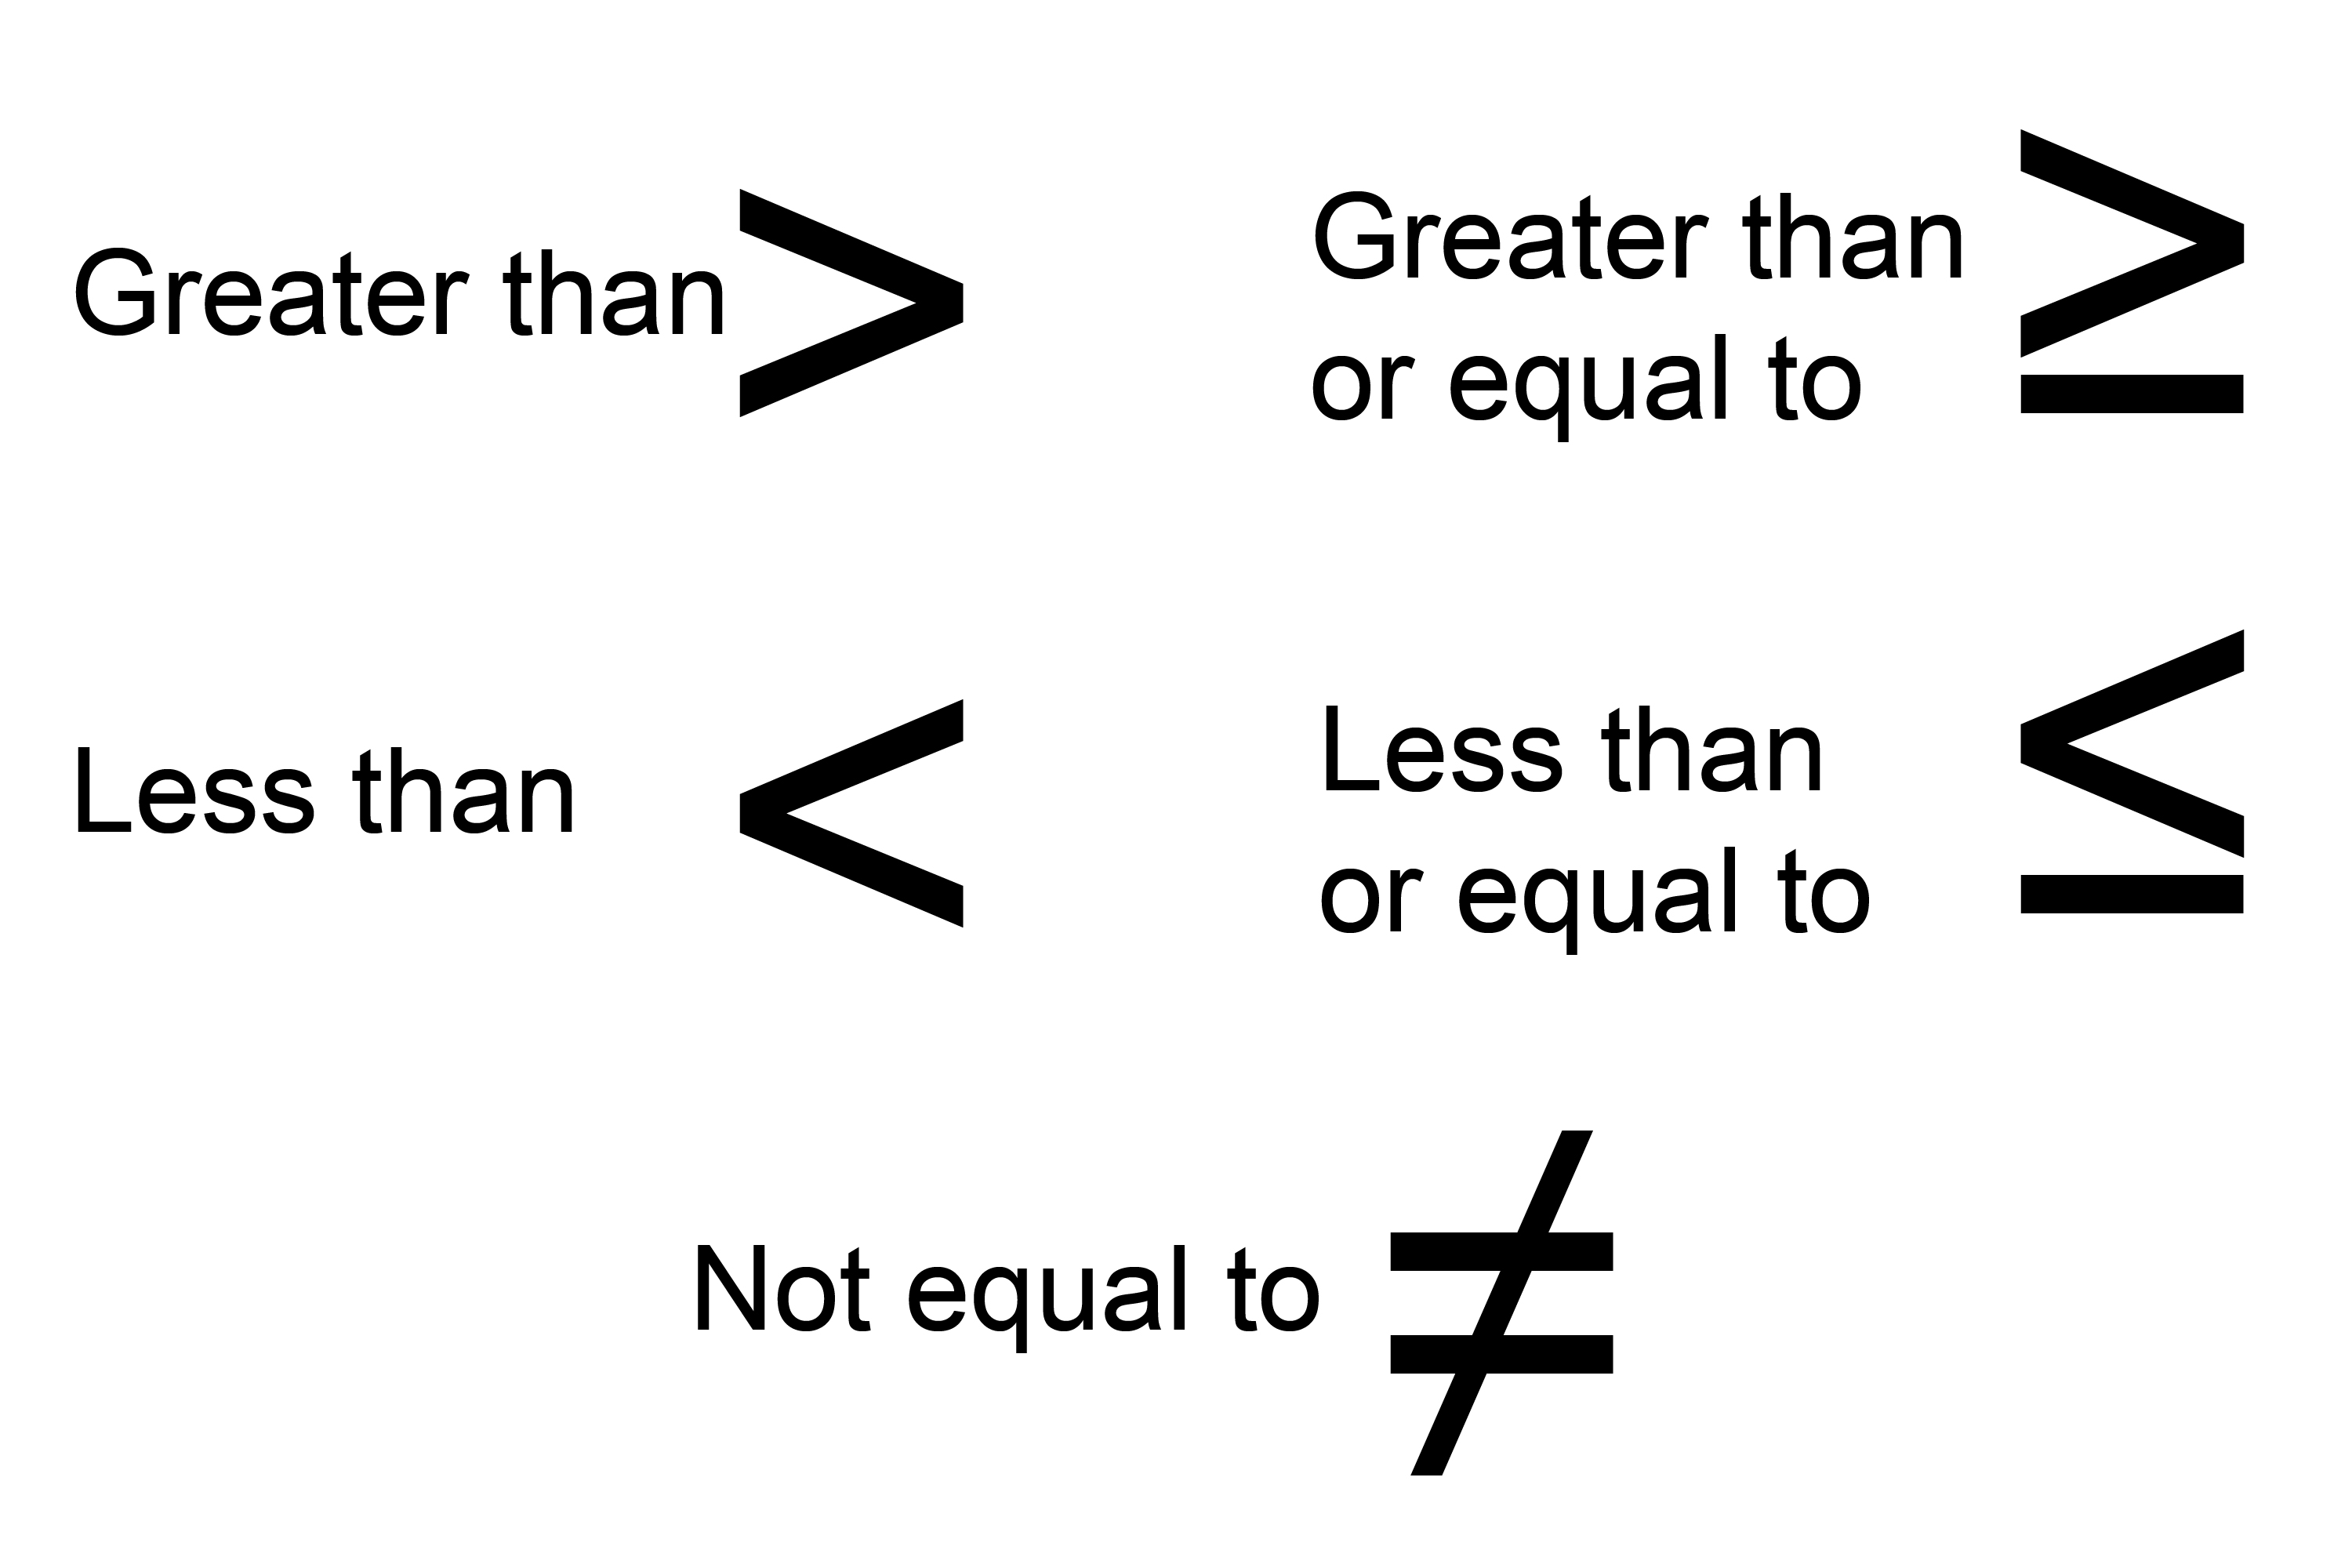 Inequalities are symbols in maths to signify a number of formula is not equal